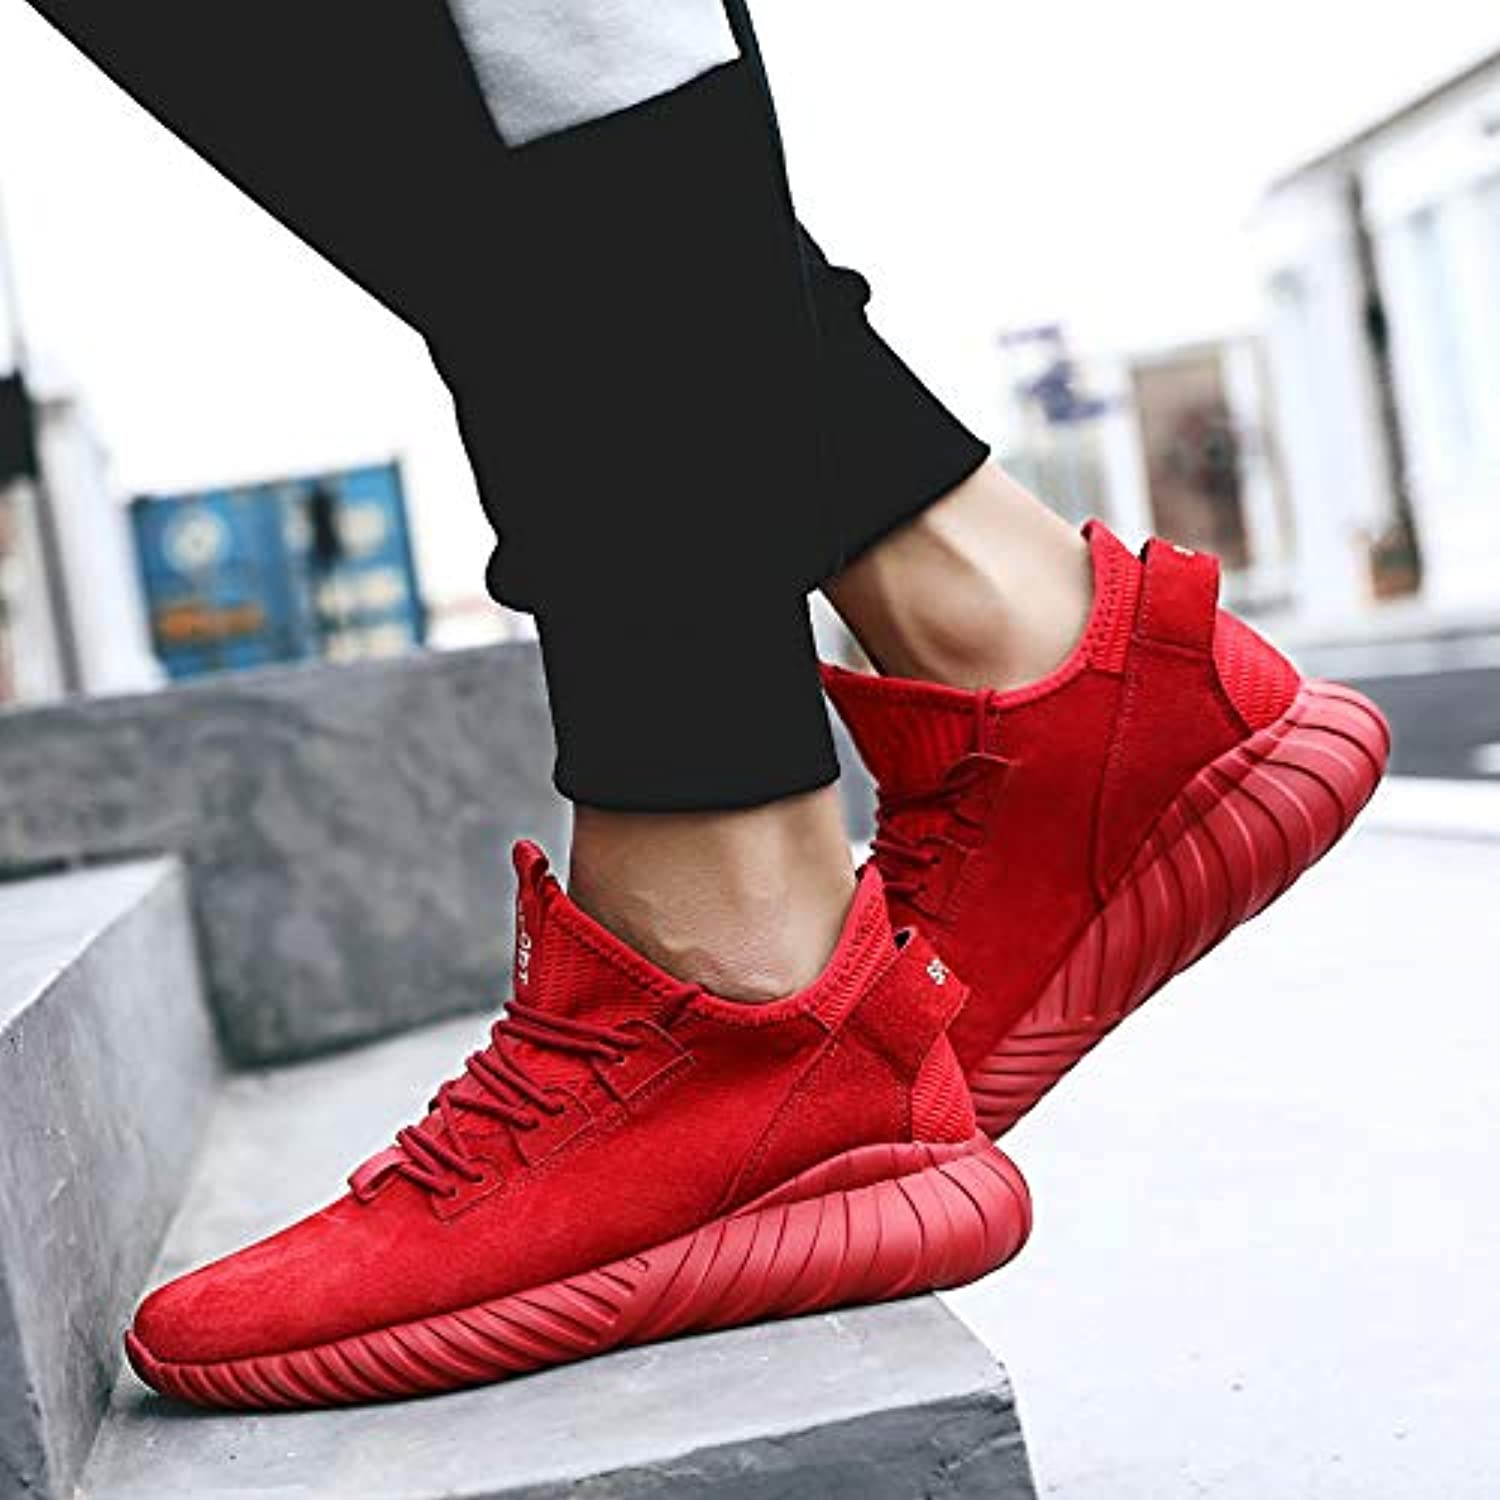 LOVDRAM Men'S shoes Autumn New Sports shoes Men'S Fashion shoes Men'S Fashion shoes Running shoes